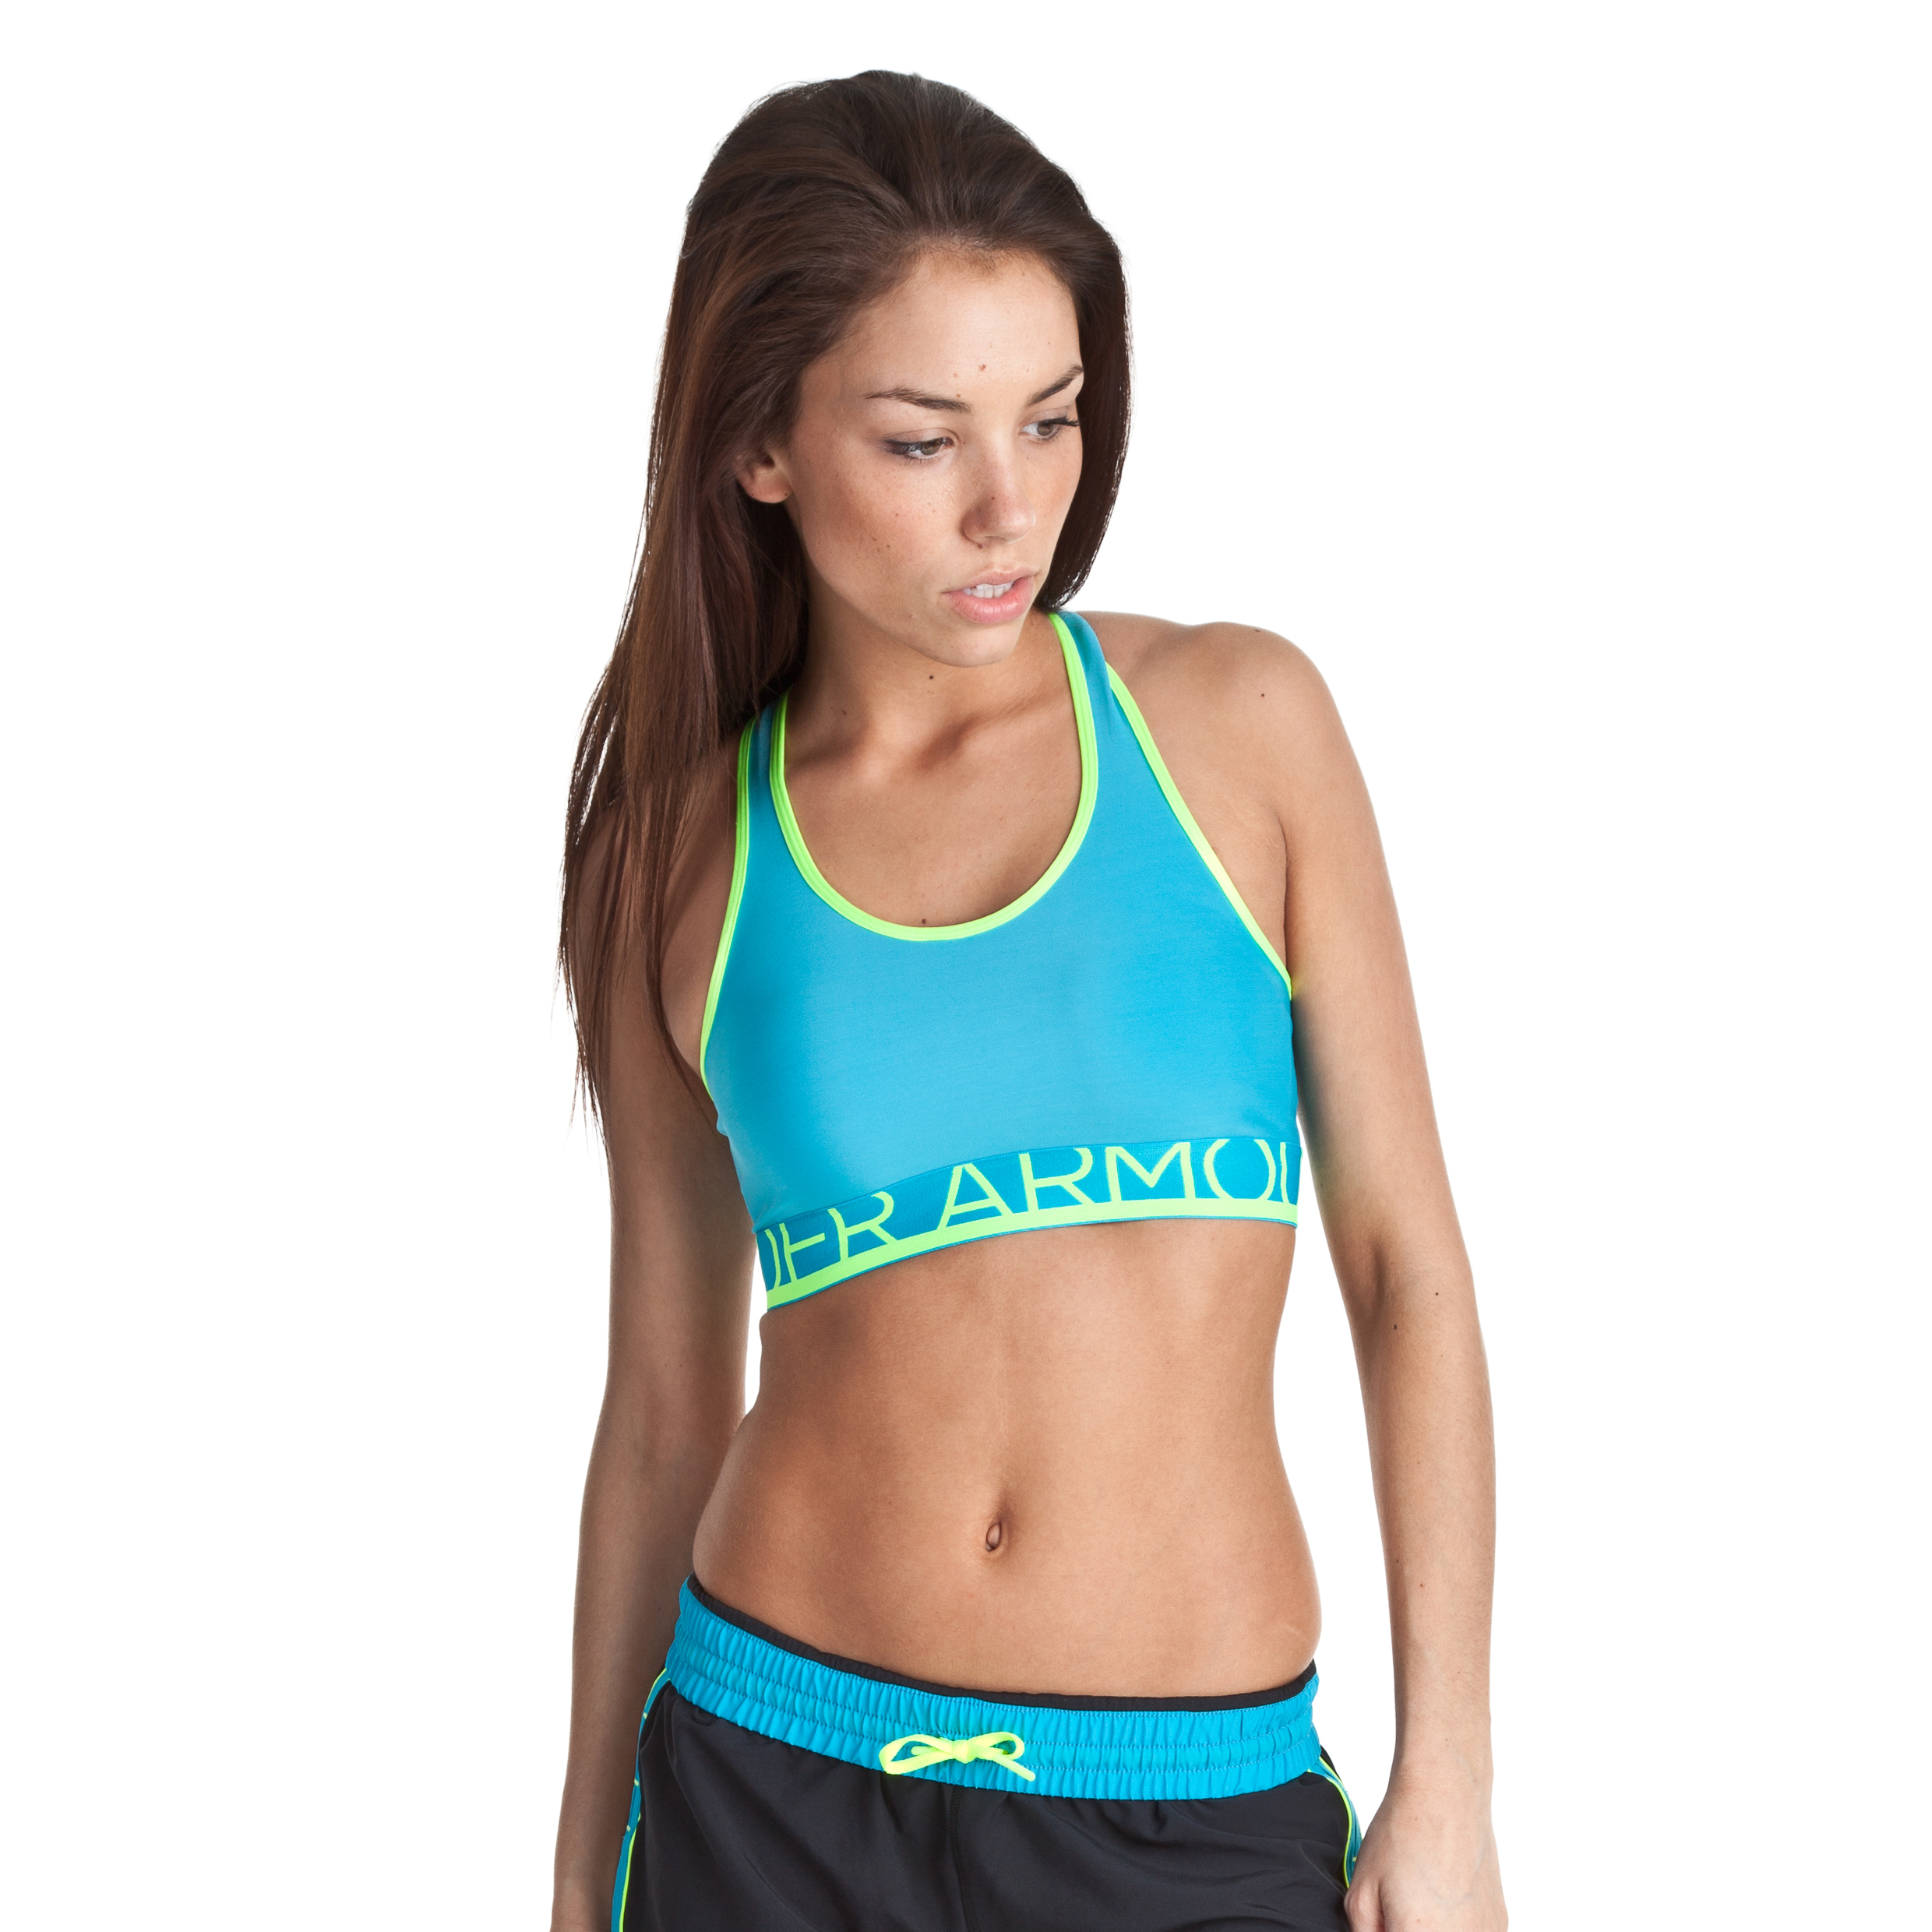 Under Armour Still Gotta Have It Bra - Deceit/High Vis - Womens